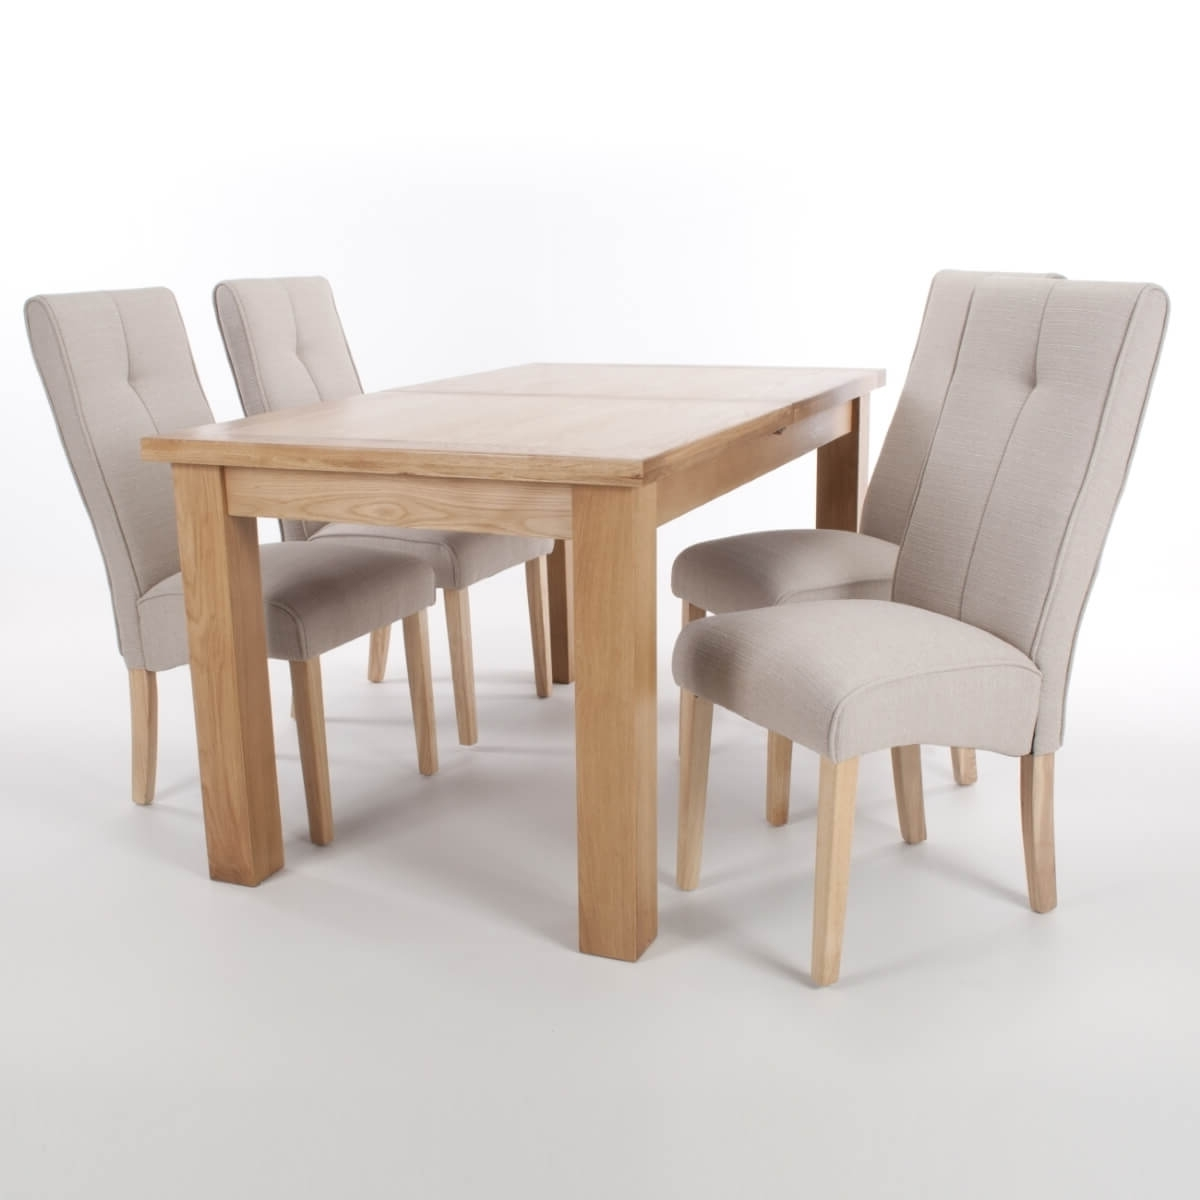 Cream Dining Tables And Chairs Within Well Known Dining Set – Solid Oak Extending Dining Table And 4 Linea Cream (Gallery 13 of 25)